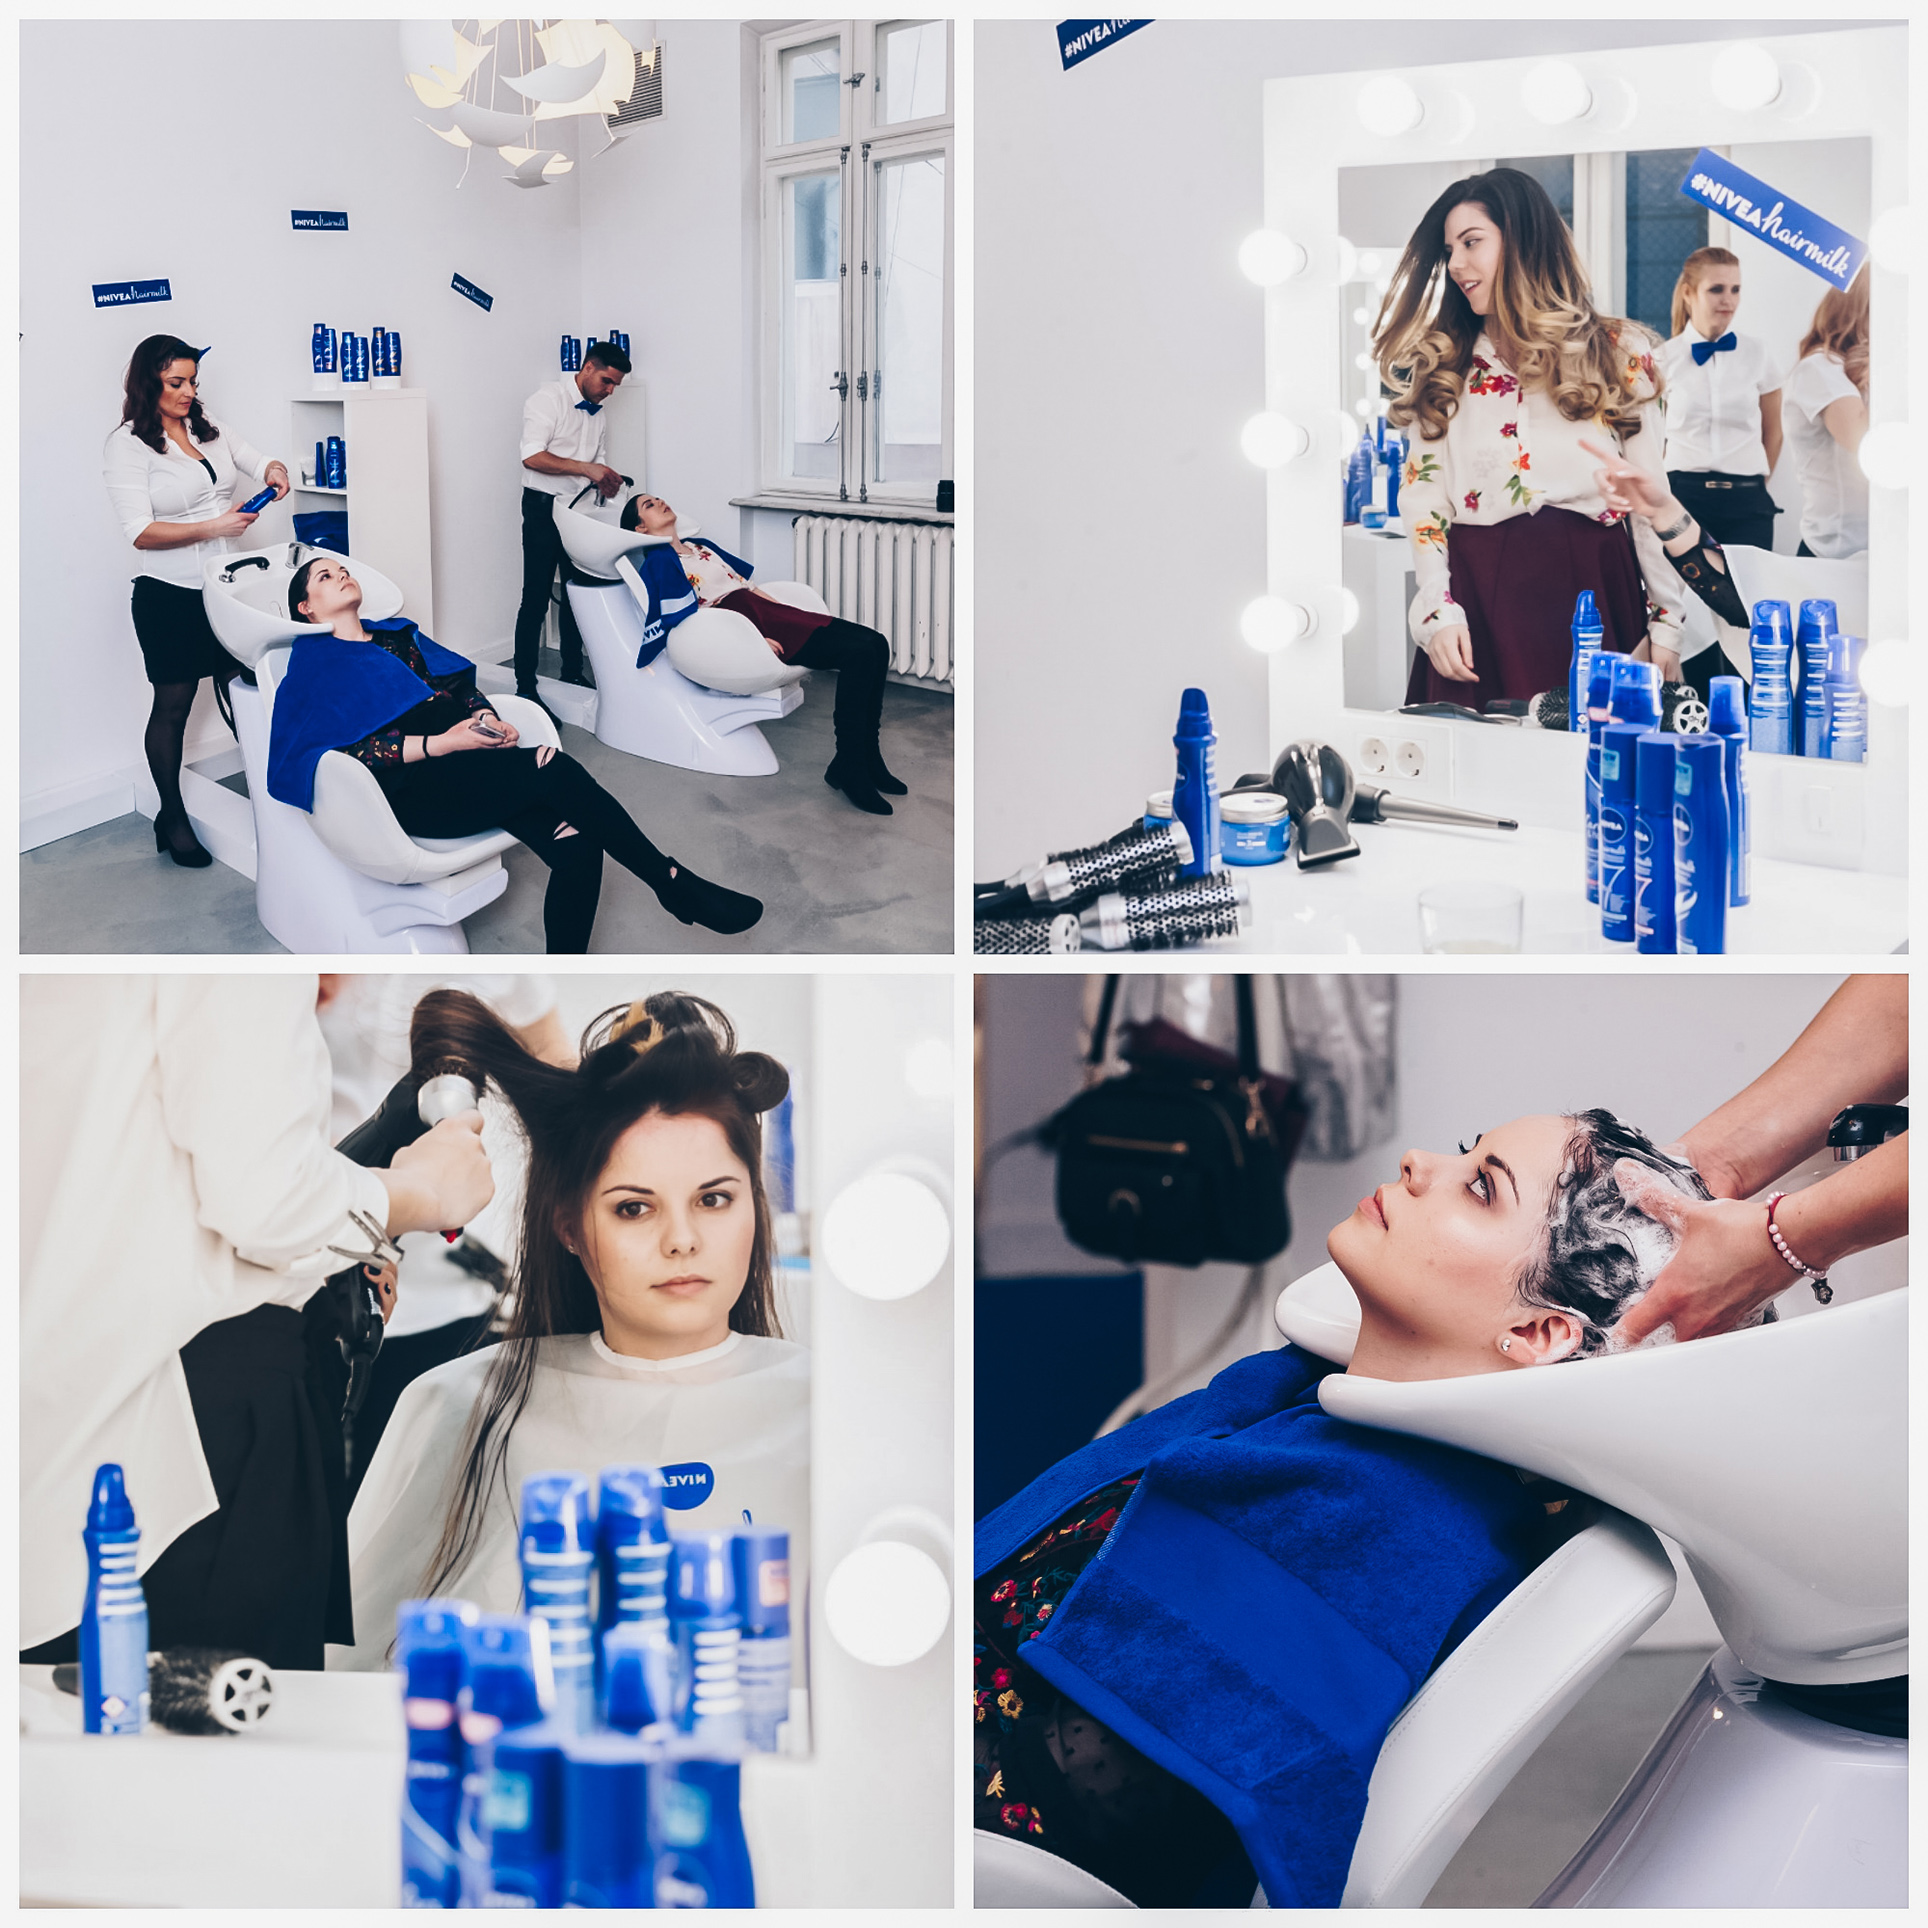 nivea hair milk experience